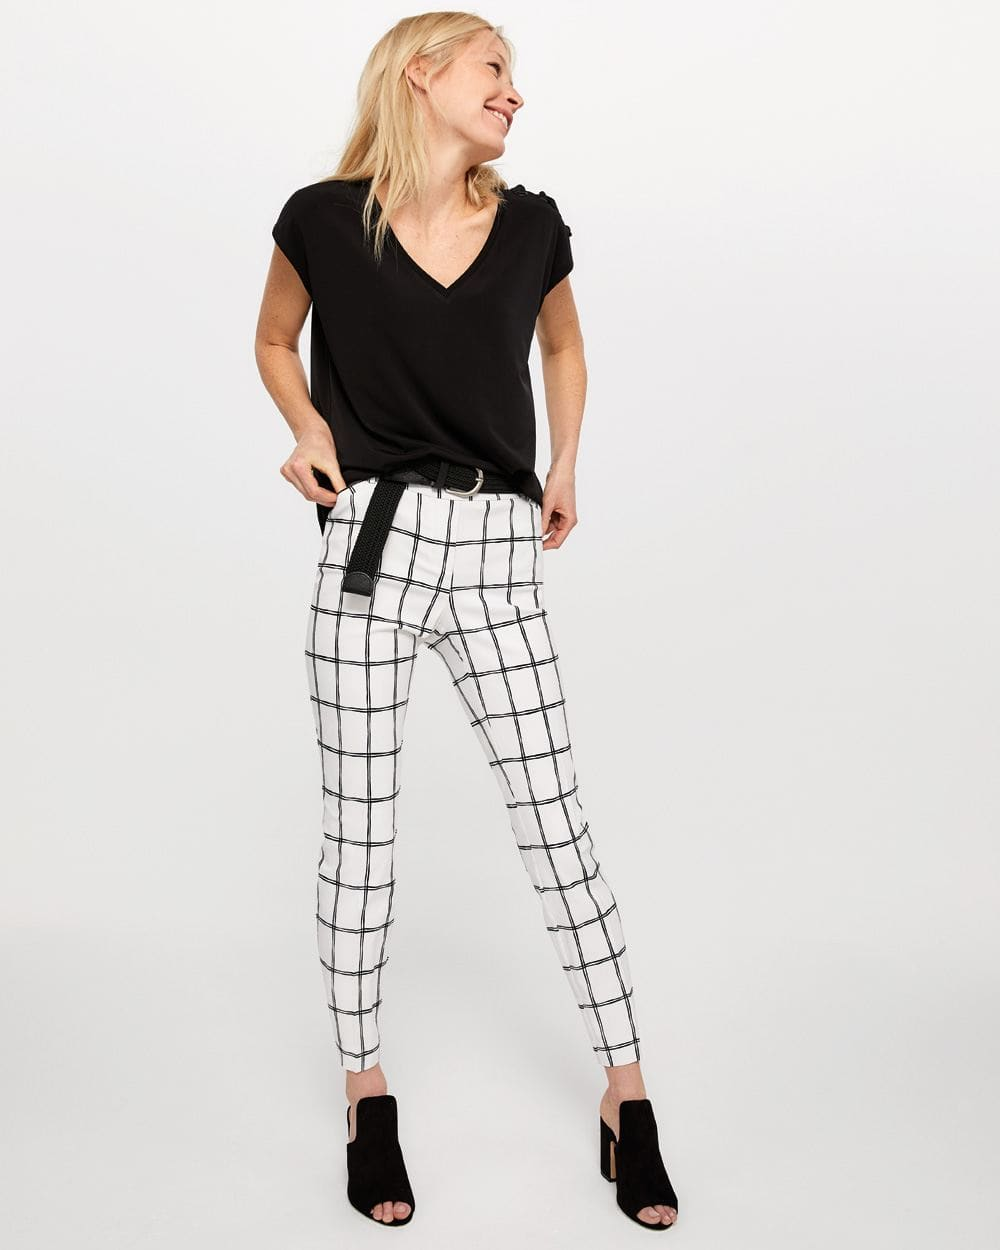 The Iconic Printed Ankle Pants